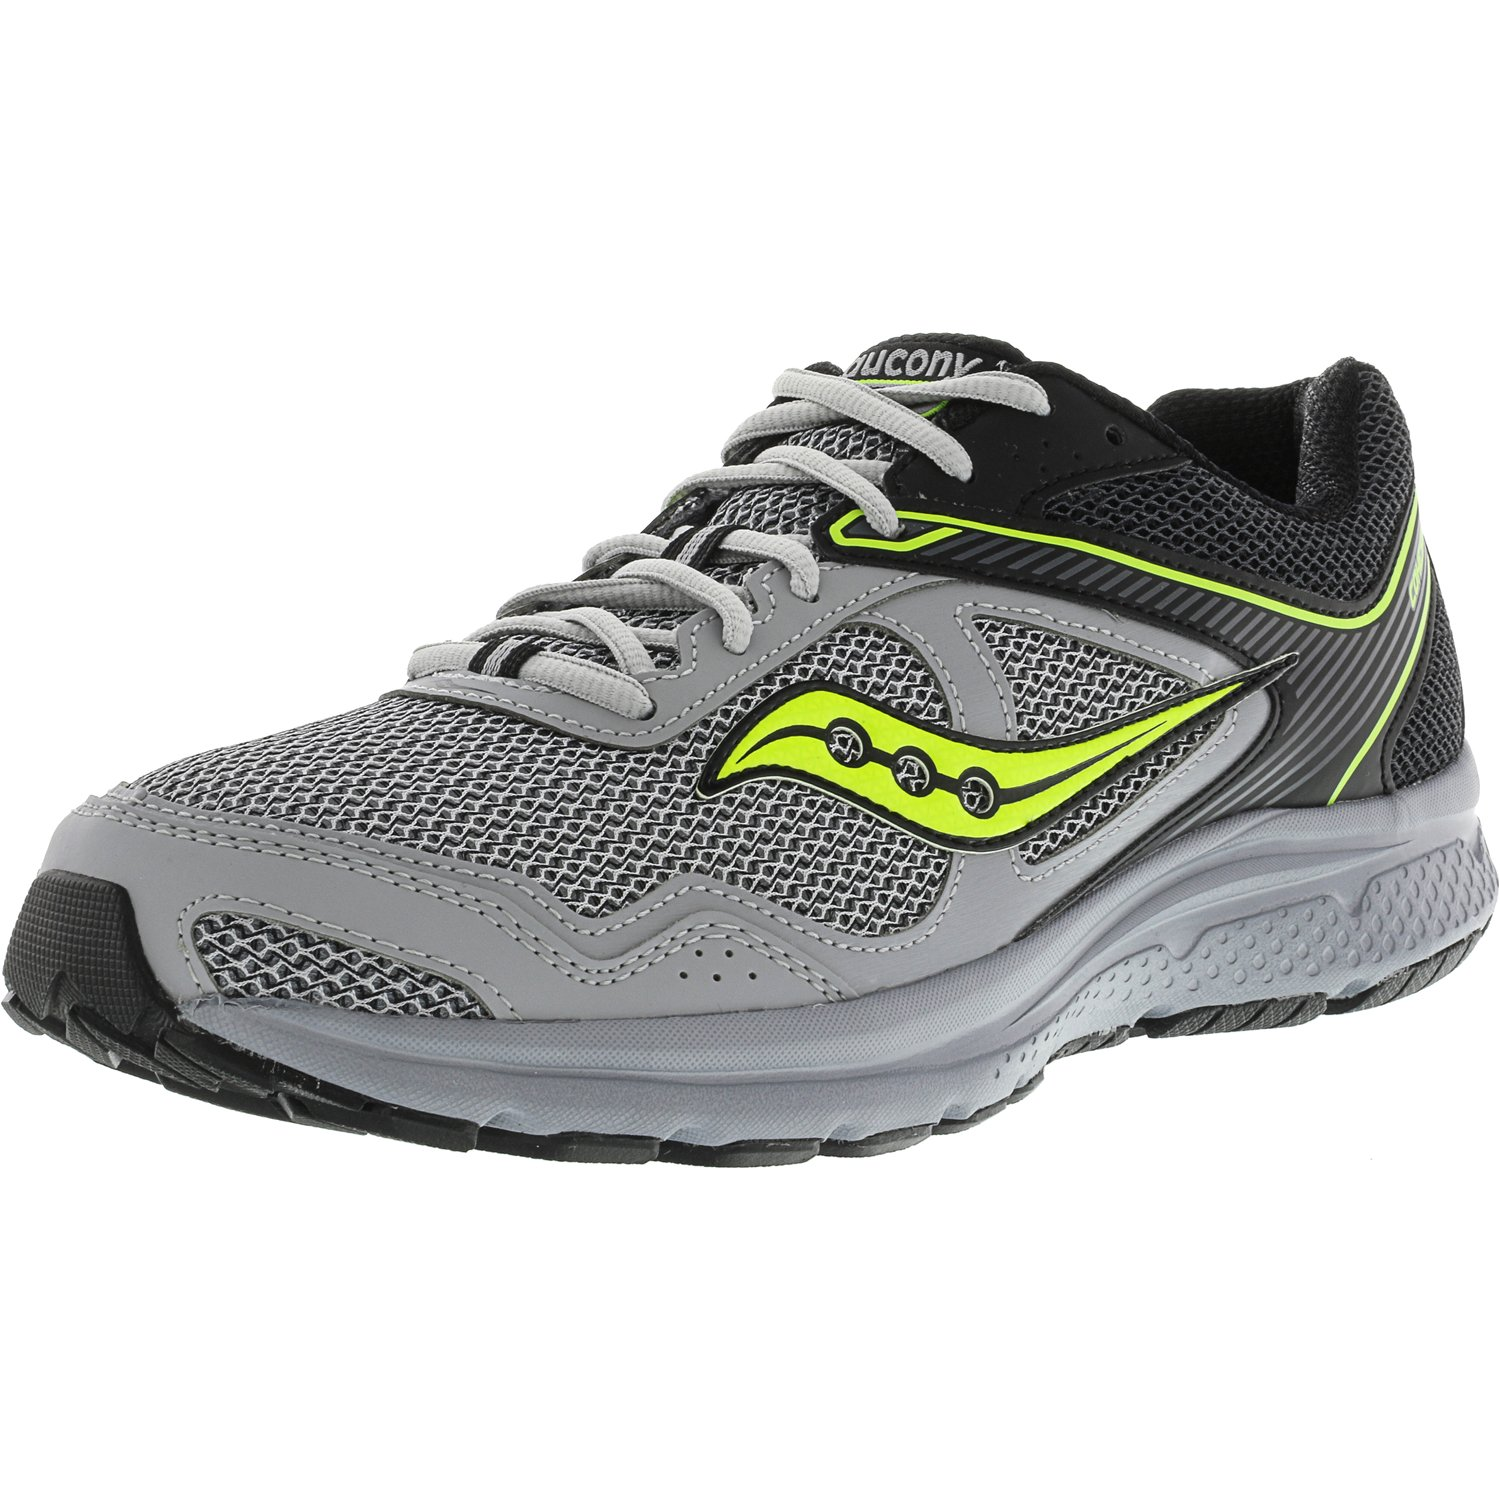 Saucony Men's Grid Cohesion 10 Royal   Black Ankle-High Running Shoe 12M by Saucony